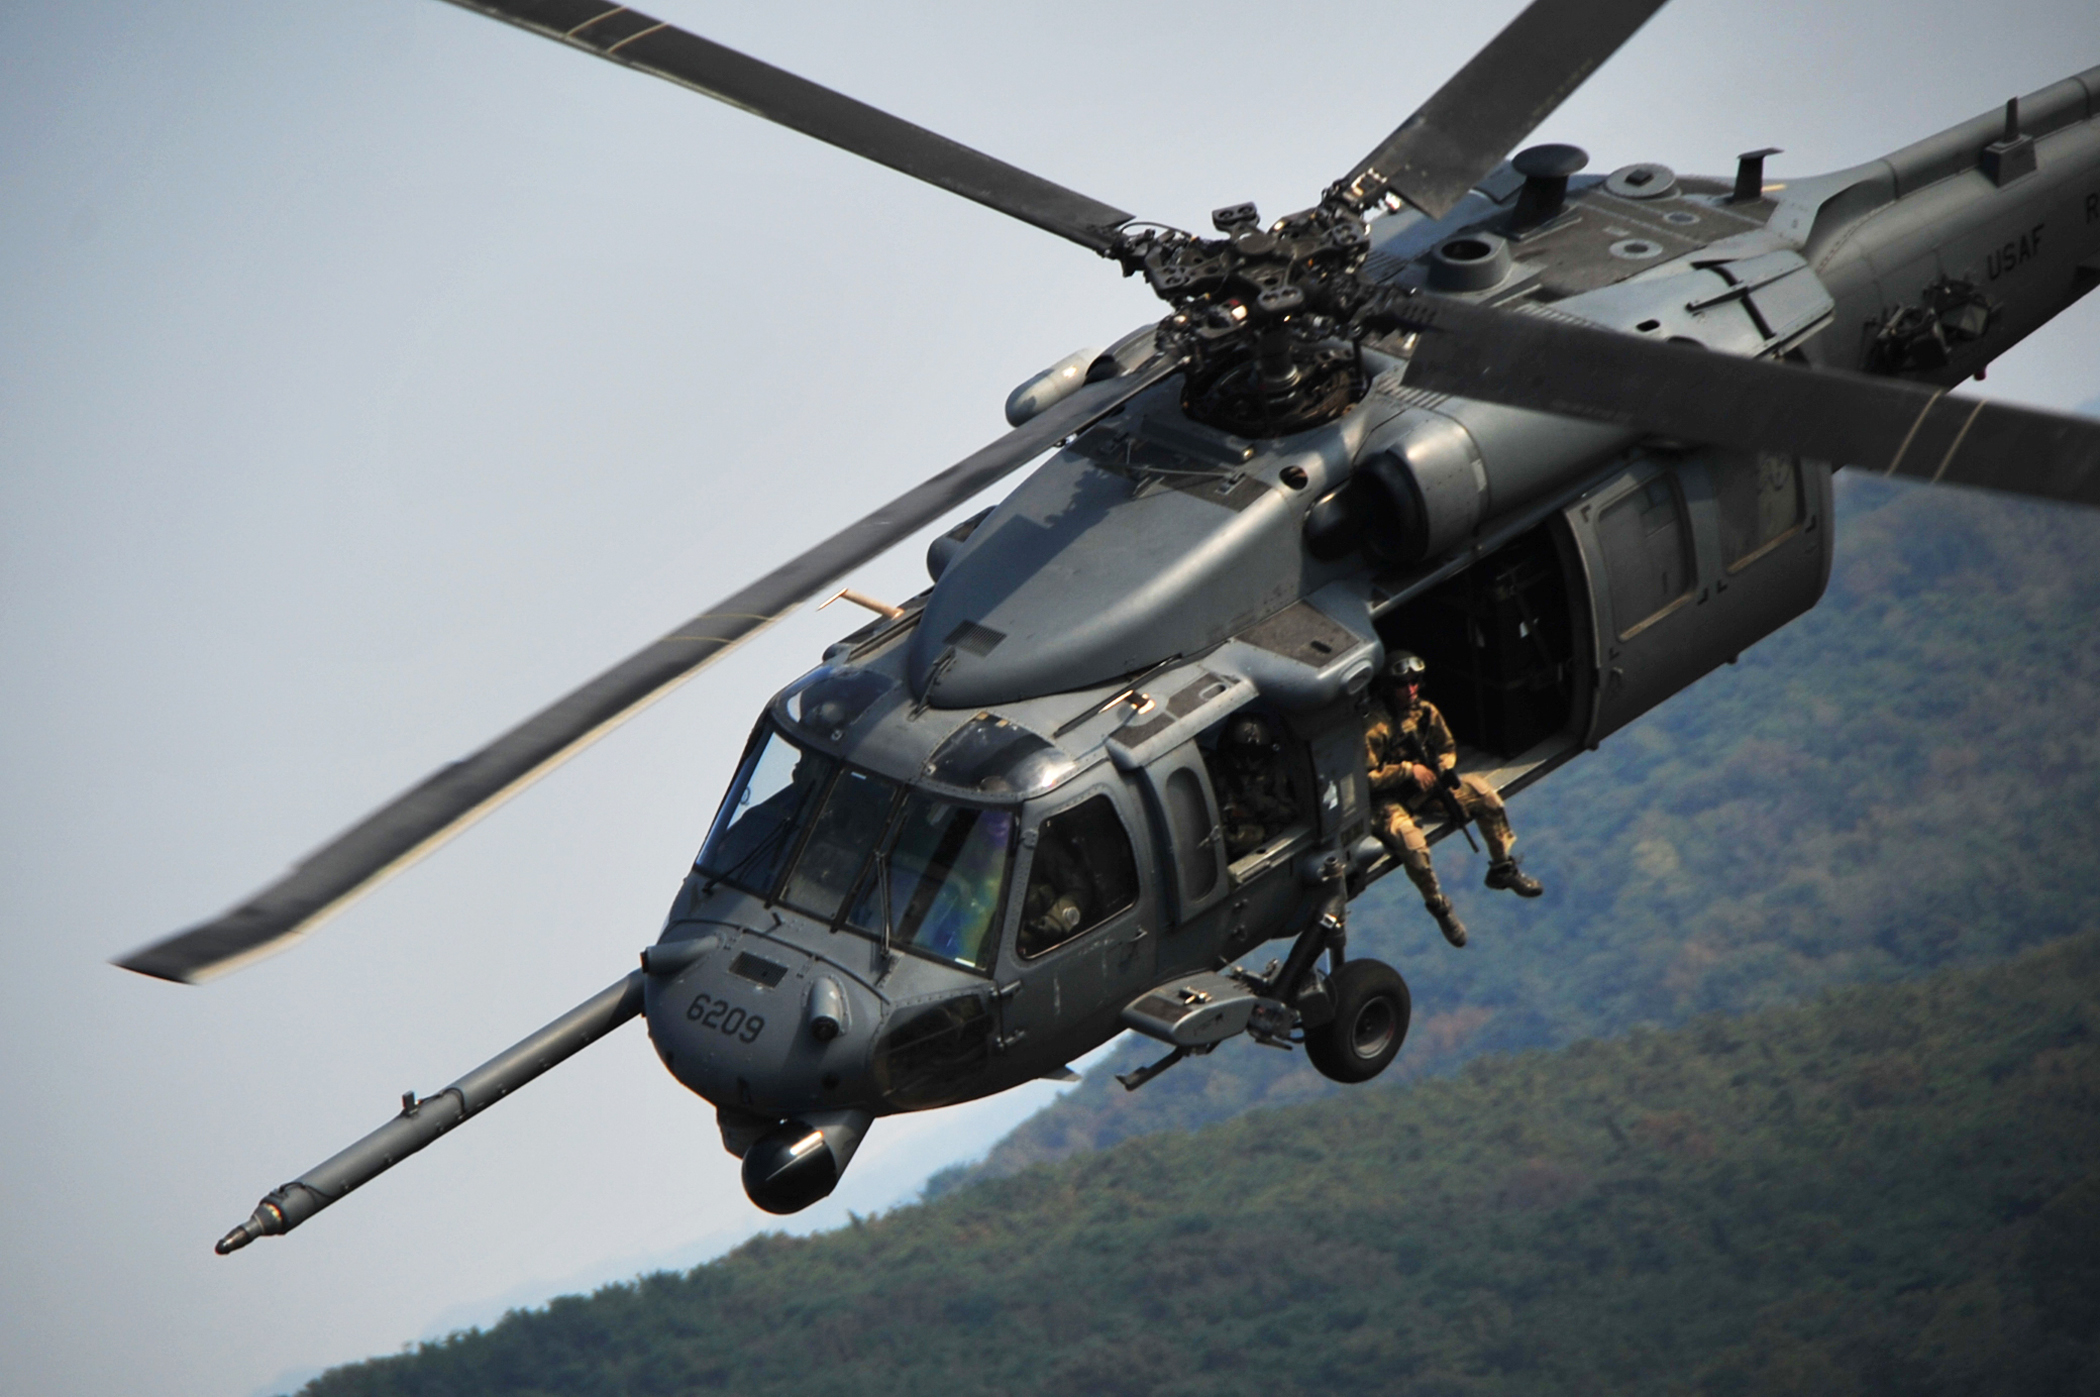 hh 60 helicopter with File Crewmembers Of The 33rd Rescue Squadron Fly An Hh 60g Pave Hawk Over Osan Air Base  South Korea  121021 F Nh180 918 on Pave Hawk Drawing 2 409853690 likewise American moreover United States Coast Guard Wallpaper together with 41648 Annihilator Us Coast Guard Mh 65c Dolphin likewise HH 60J U S Coast Guard.